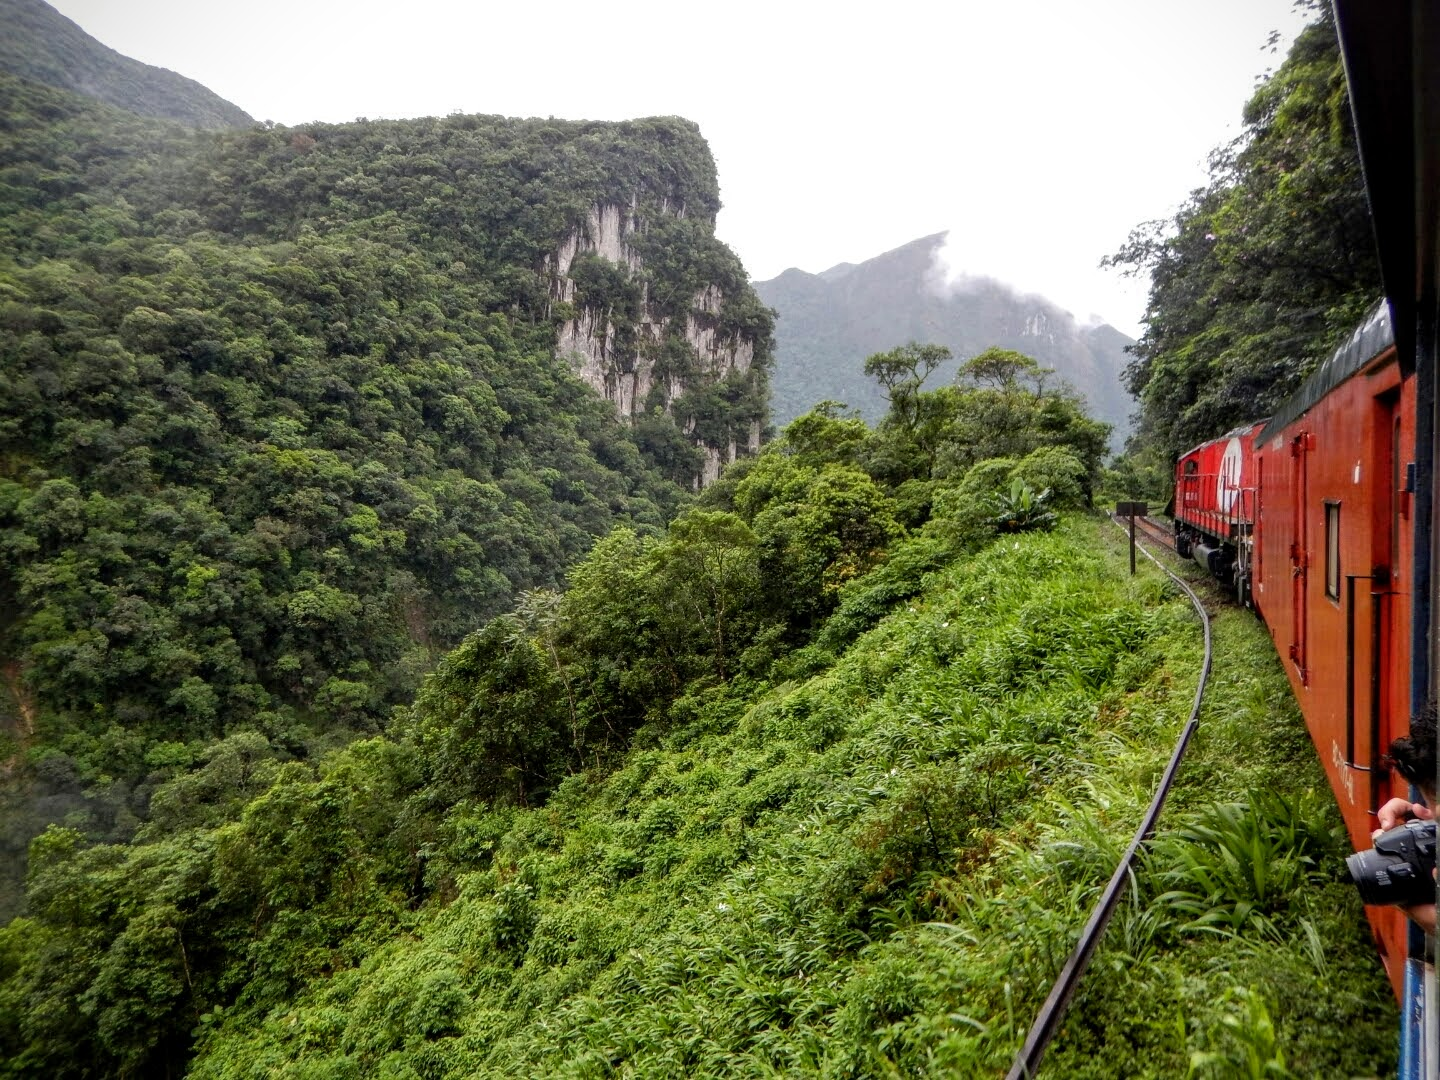 View from the train as it enters a steep sided valley